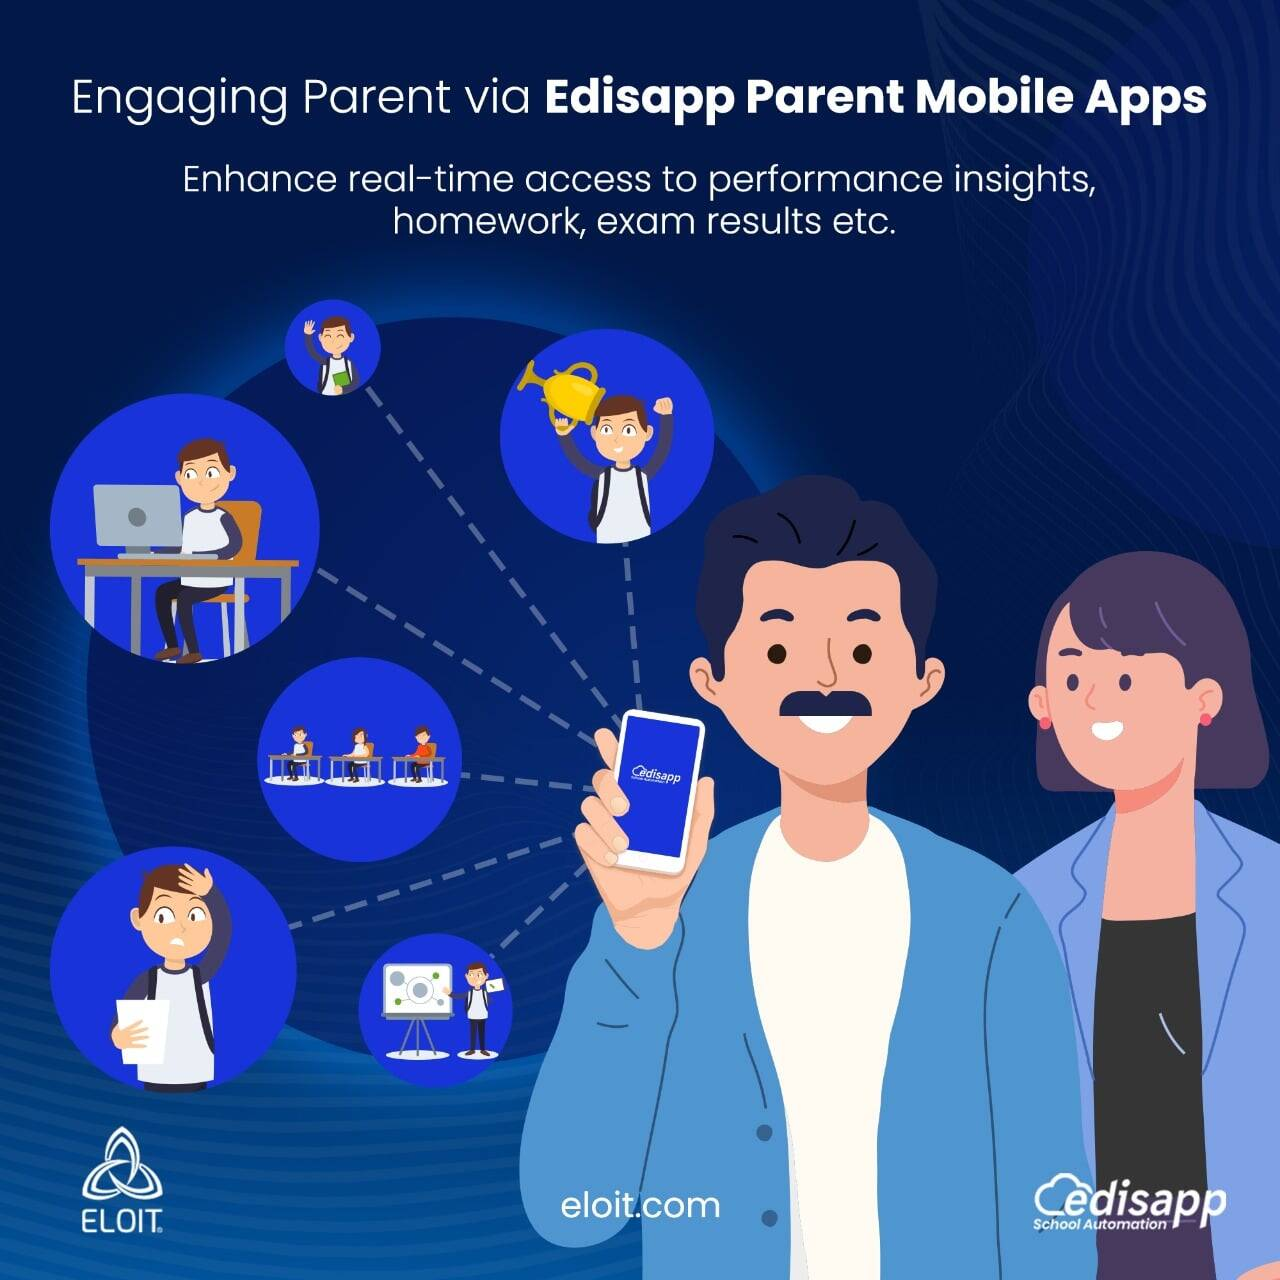 Top-rated features of Edisapp Parent App